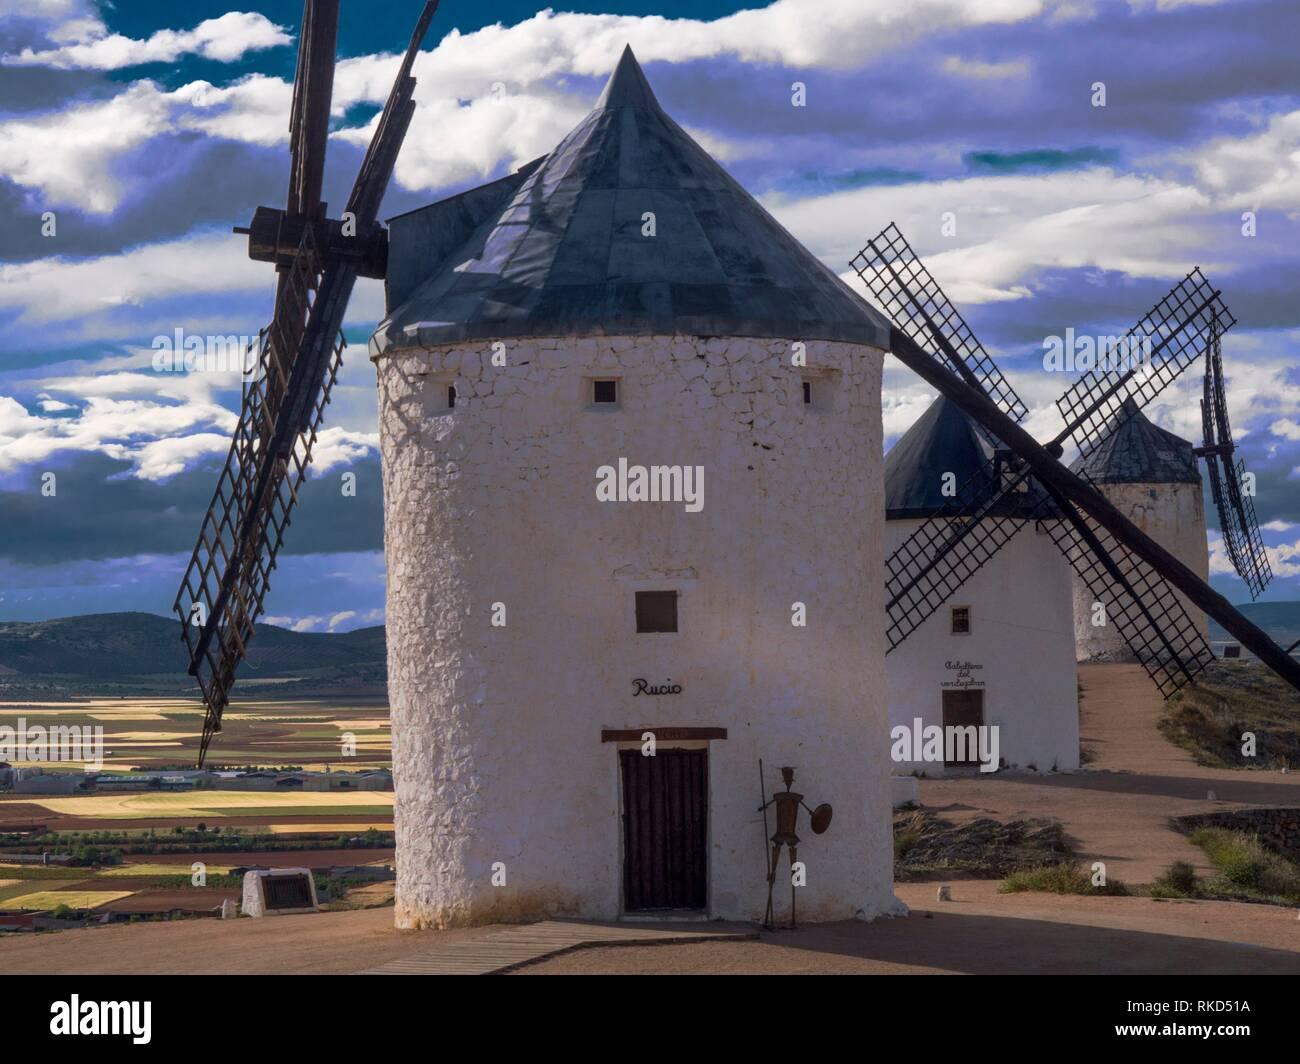 Spain,Castile-La Mancha, Toledo, the famed Don Quixote windmills at Consuegra - Stock Image